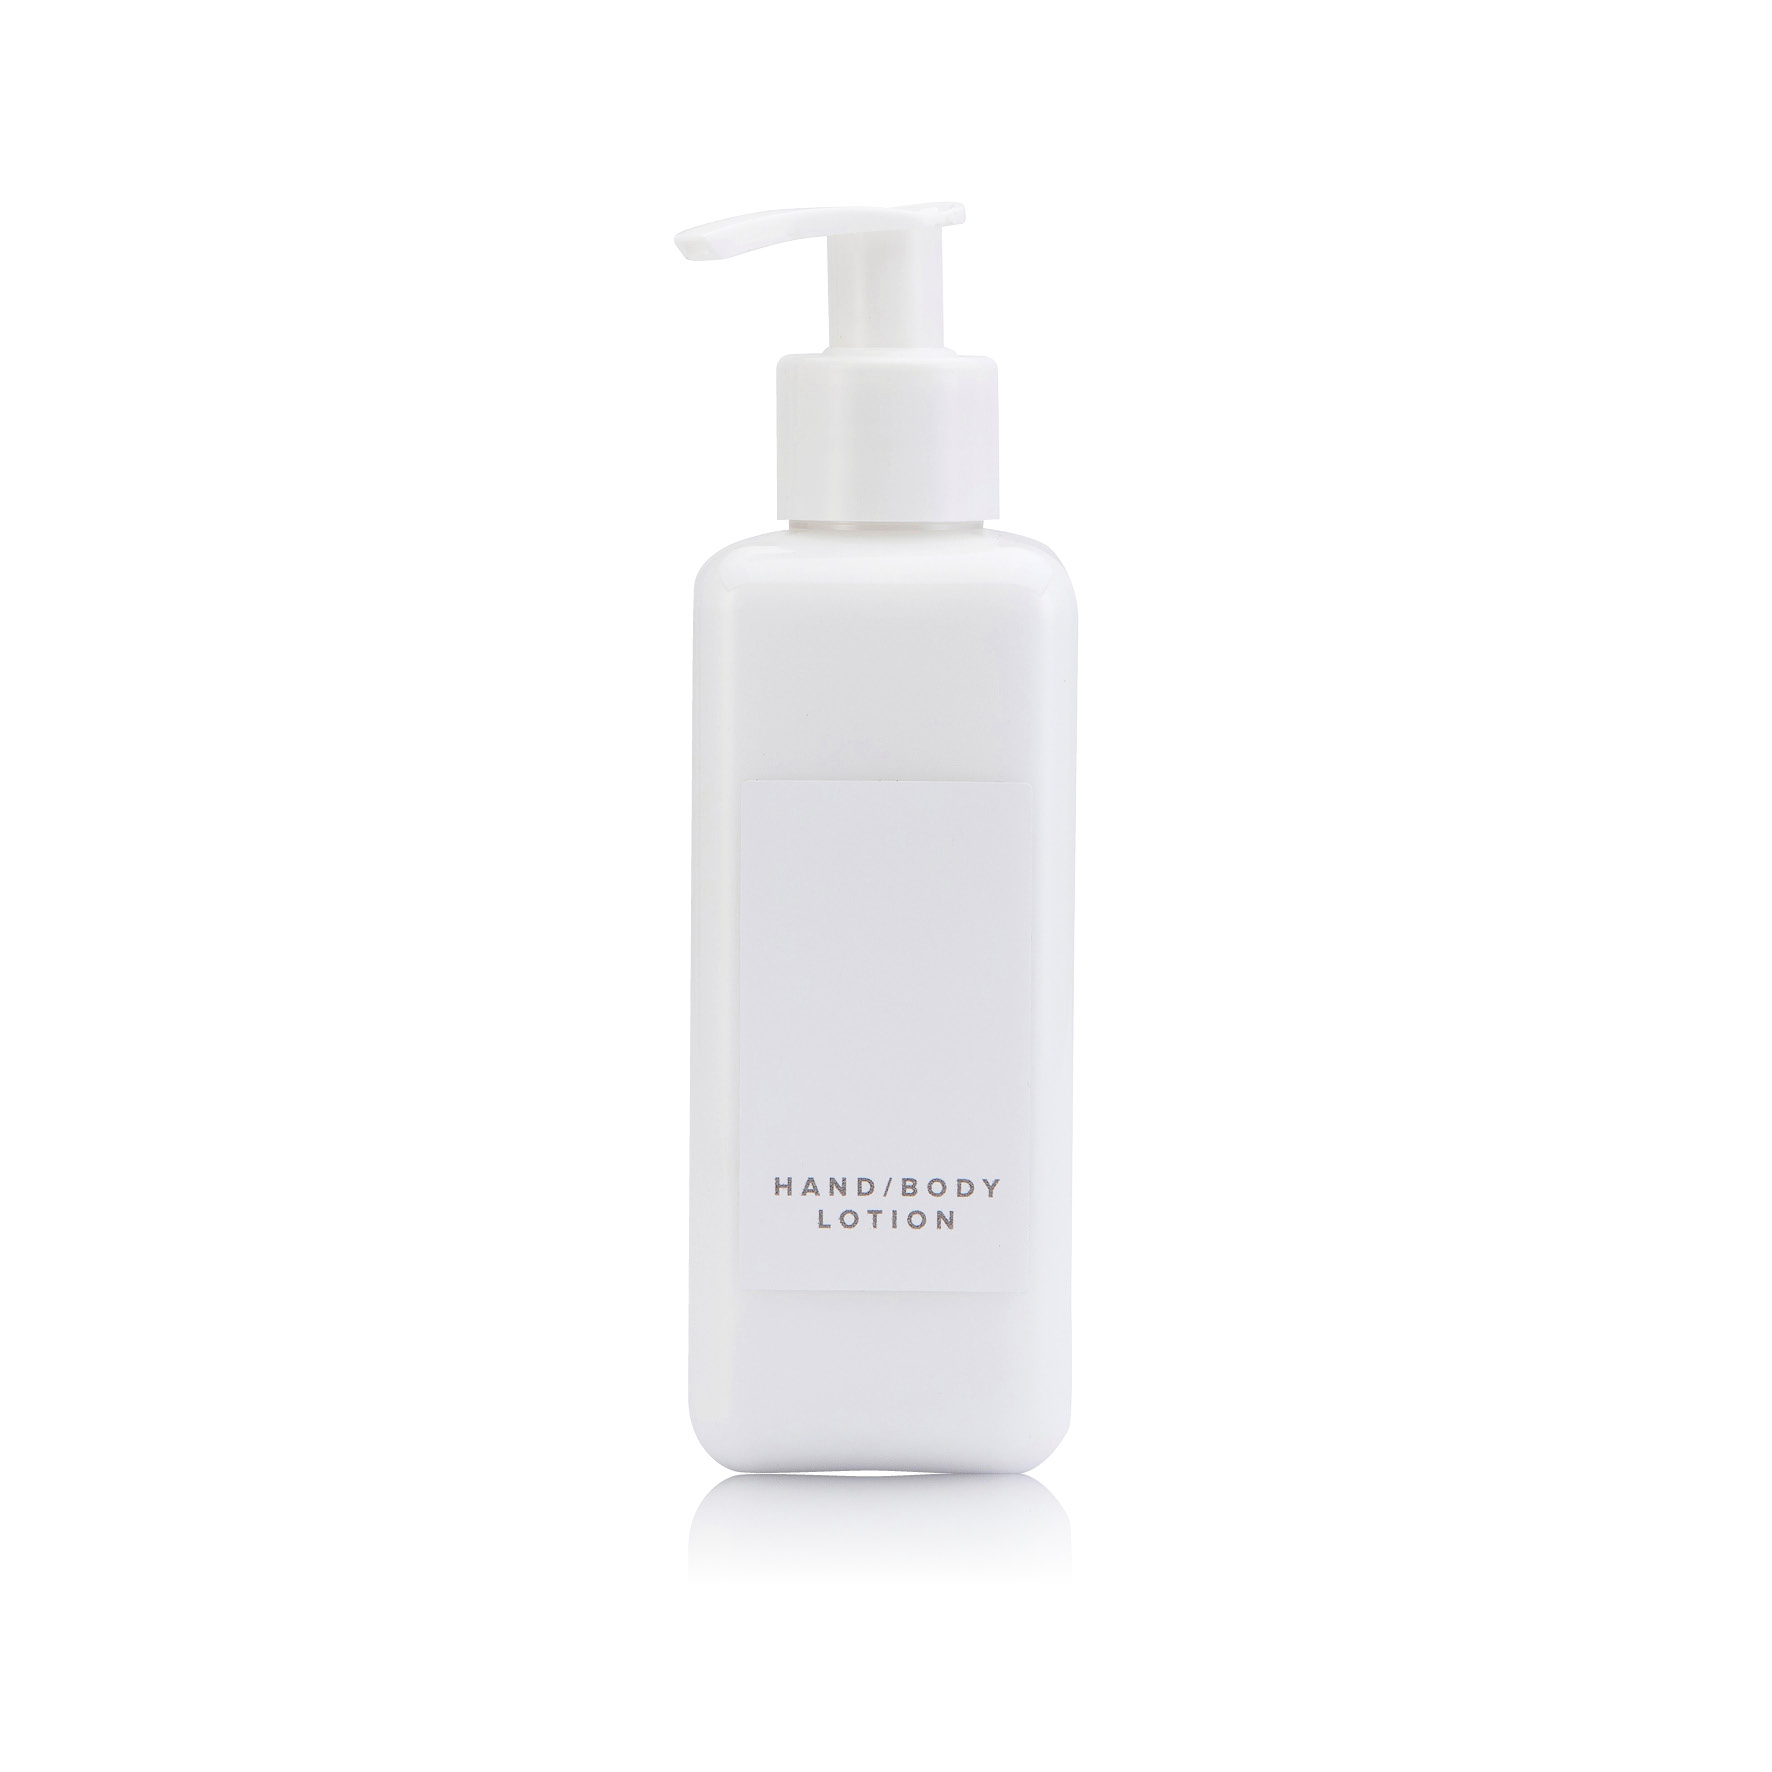 CONTEMP 200ml HAND/BODY LOTION